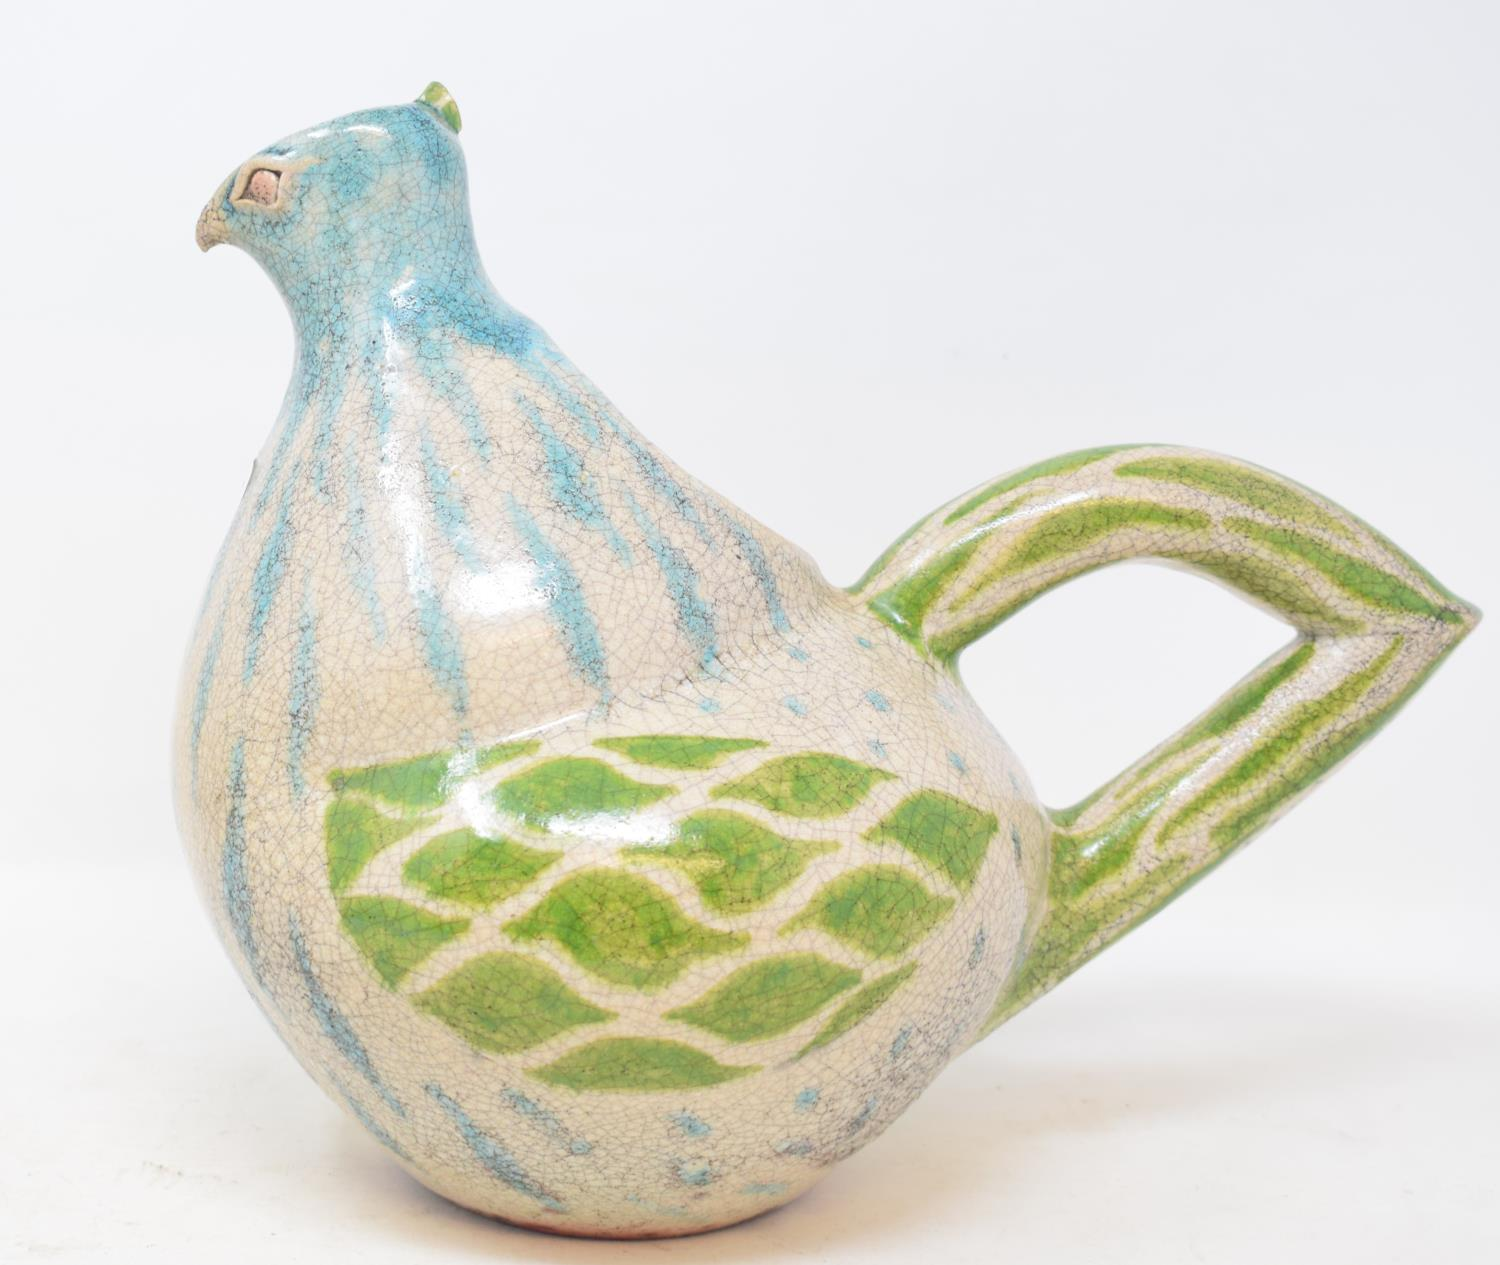 Lot 22 - A Mick Morgan studio pottery jug, in the form of a bird, 24 cm high